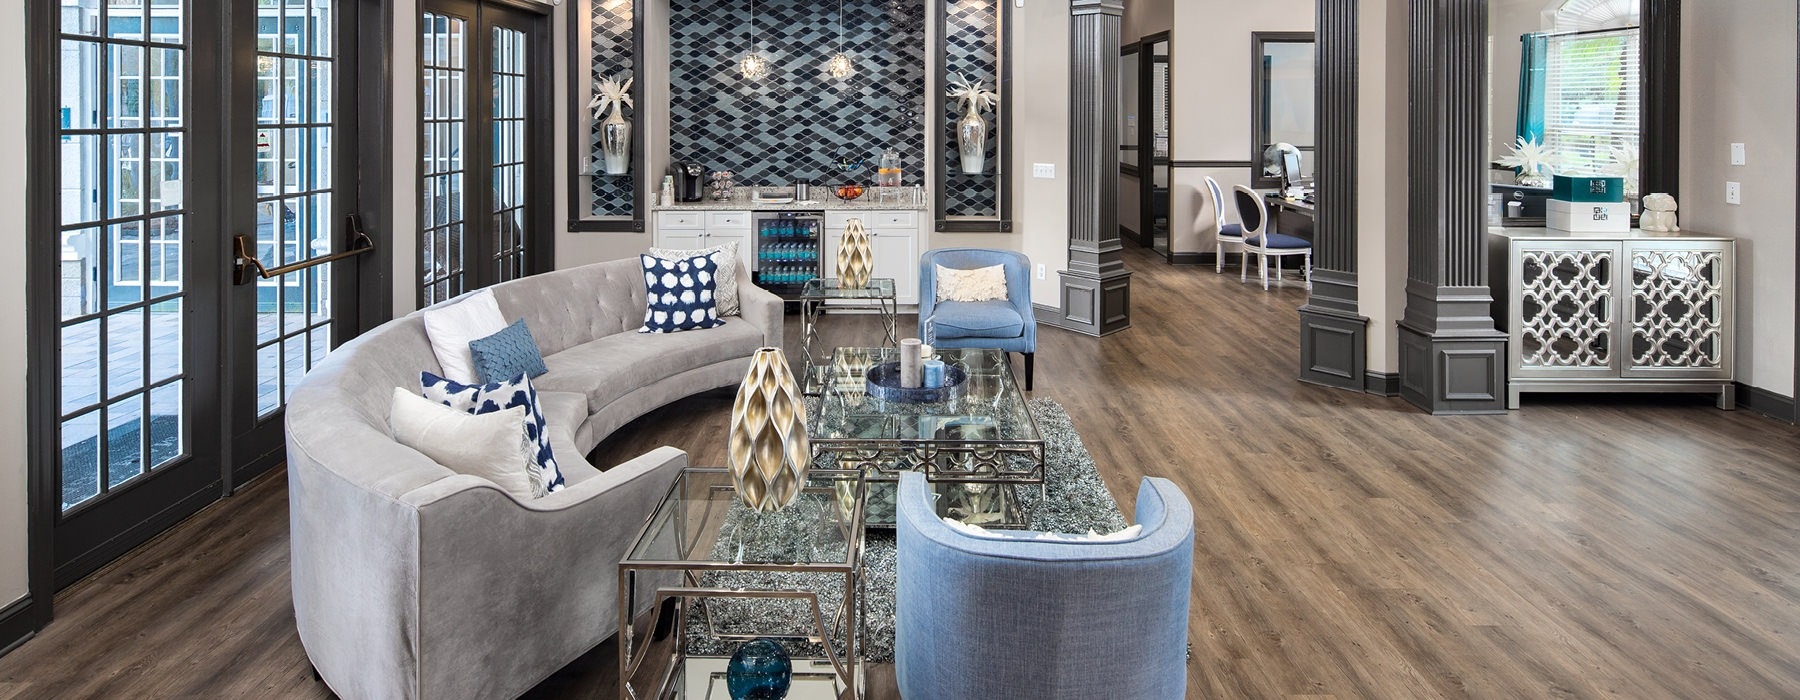 bright, open concept clubhouse with seating areas